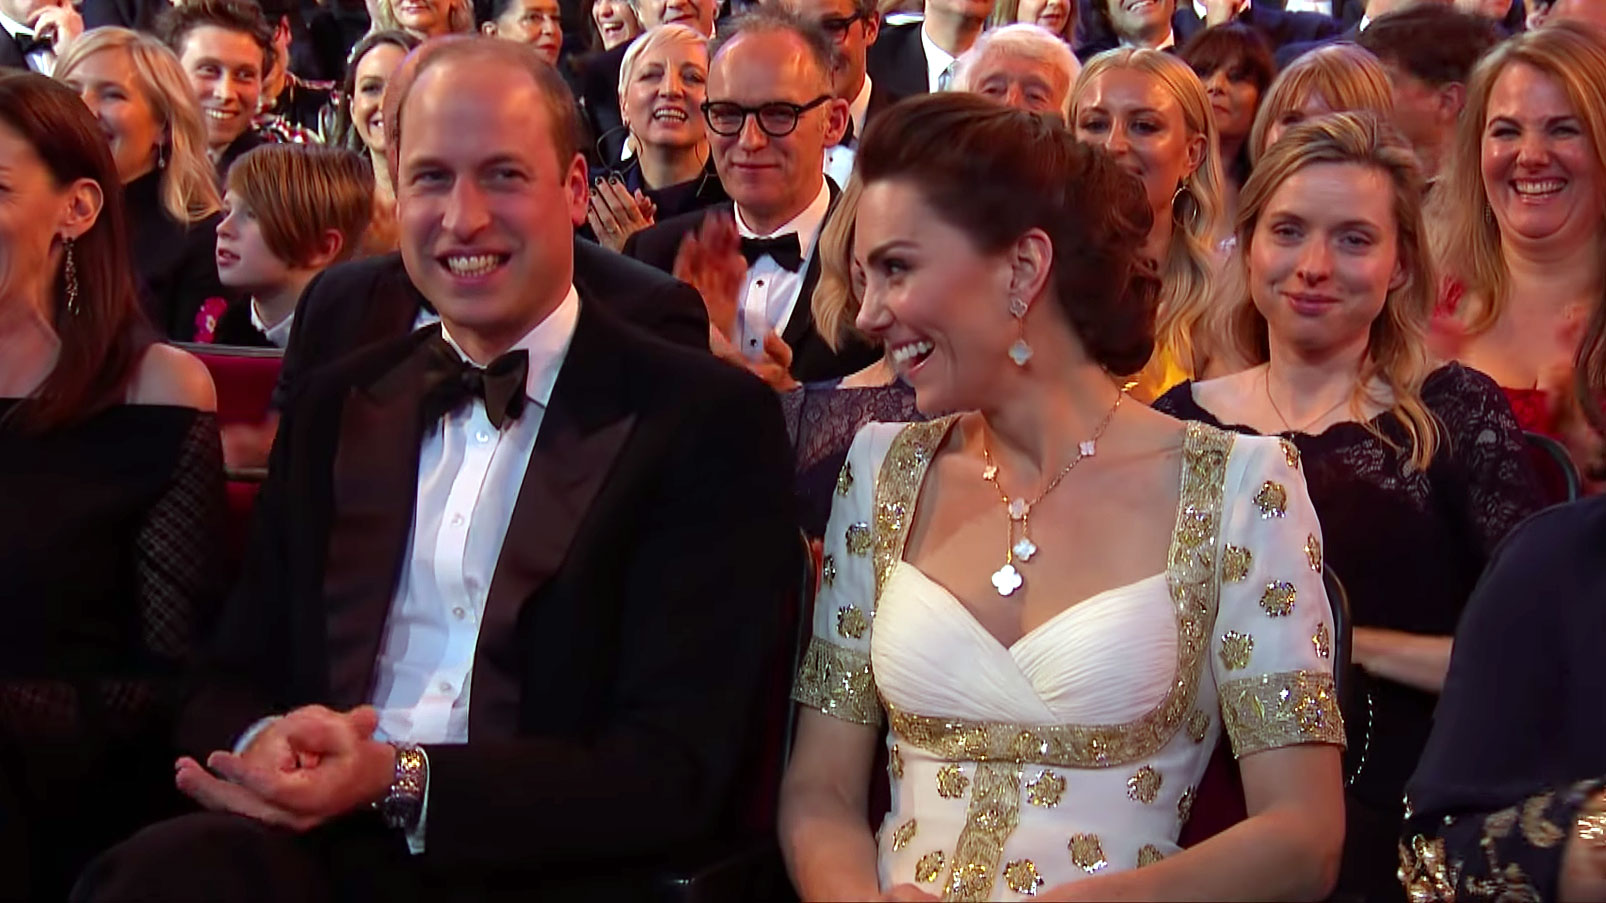 Prince William and Duchess Kate Reacted to Brad Pitt's BAFTA Awards 2020 Joke About Prince Harry